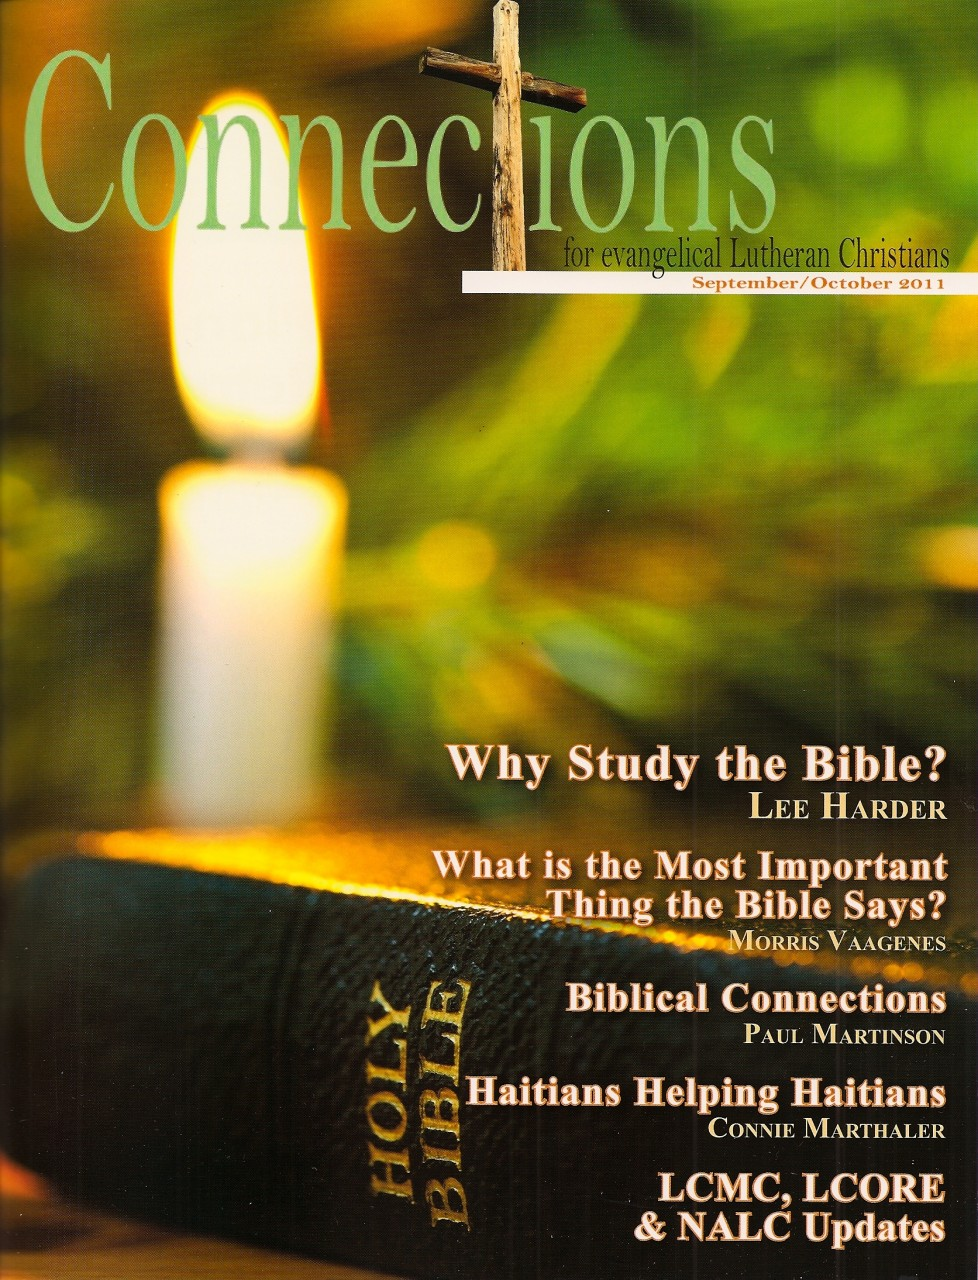 Connections Back Issue Sept/Oct 2011